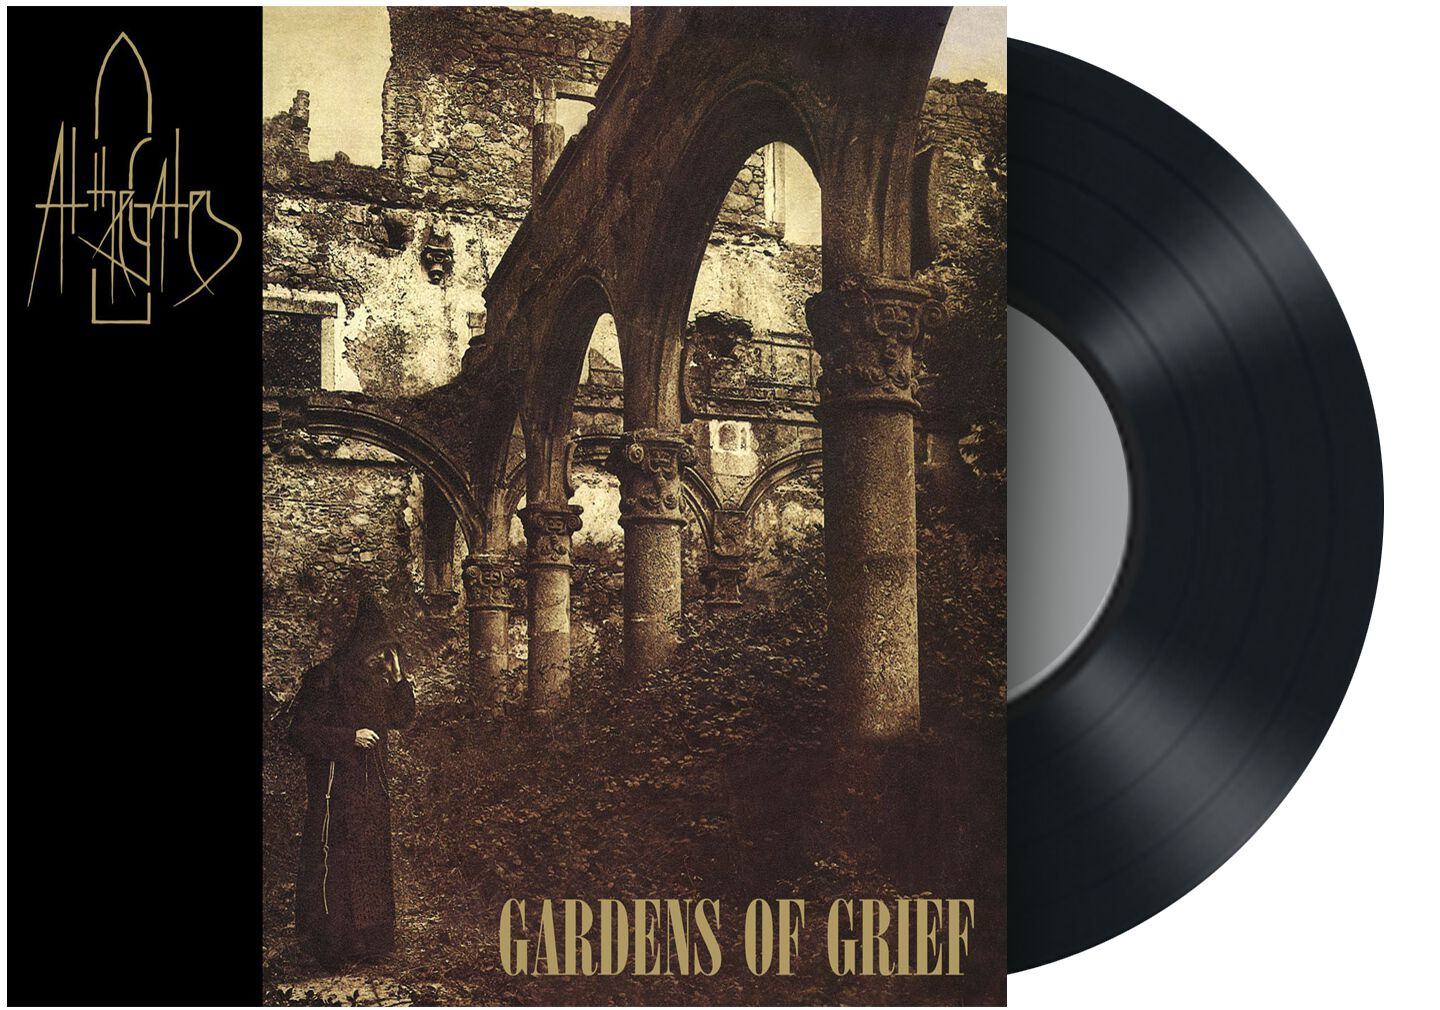 Image of At The Gates Gardens of grief 10 inch-EP Standard